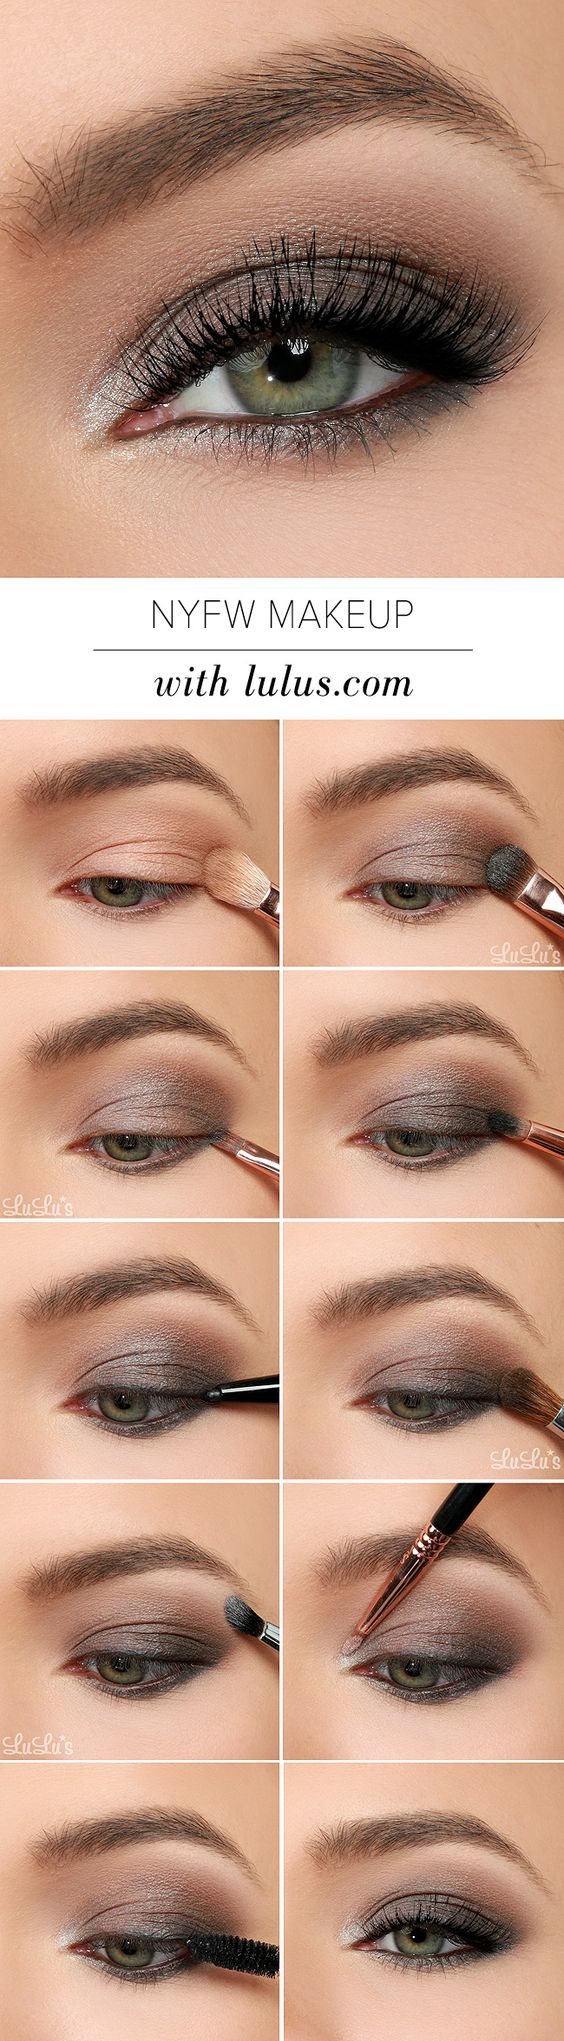 10 quick easy step by step smokey eye makeup tutorials 2018 easy step by step smokey eye makeup tutorials nyfw makeup baditri Choice Image